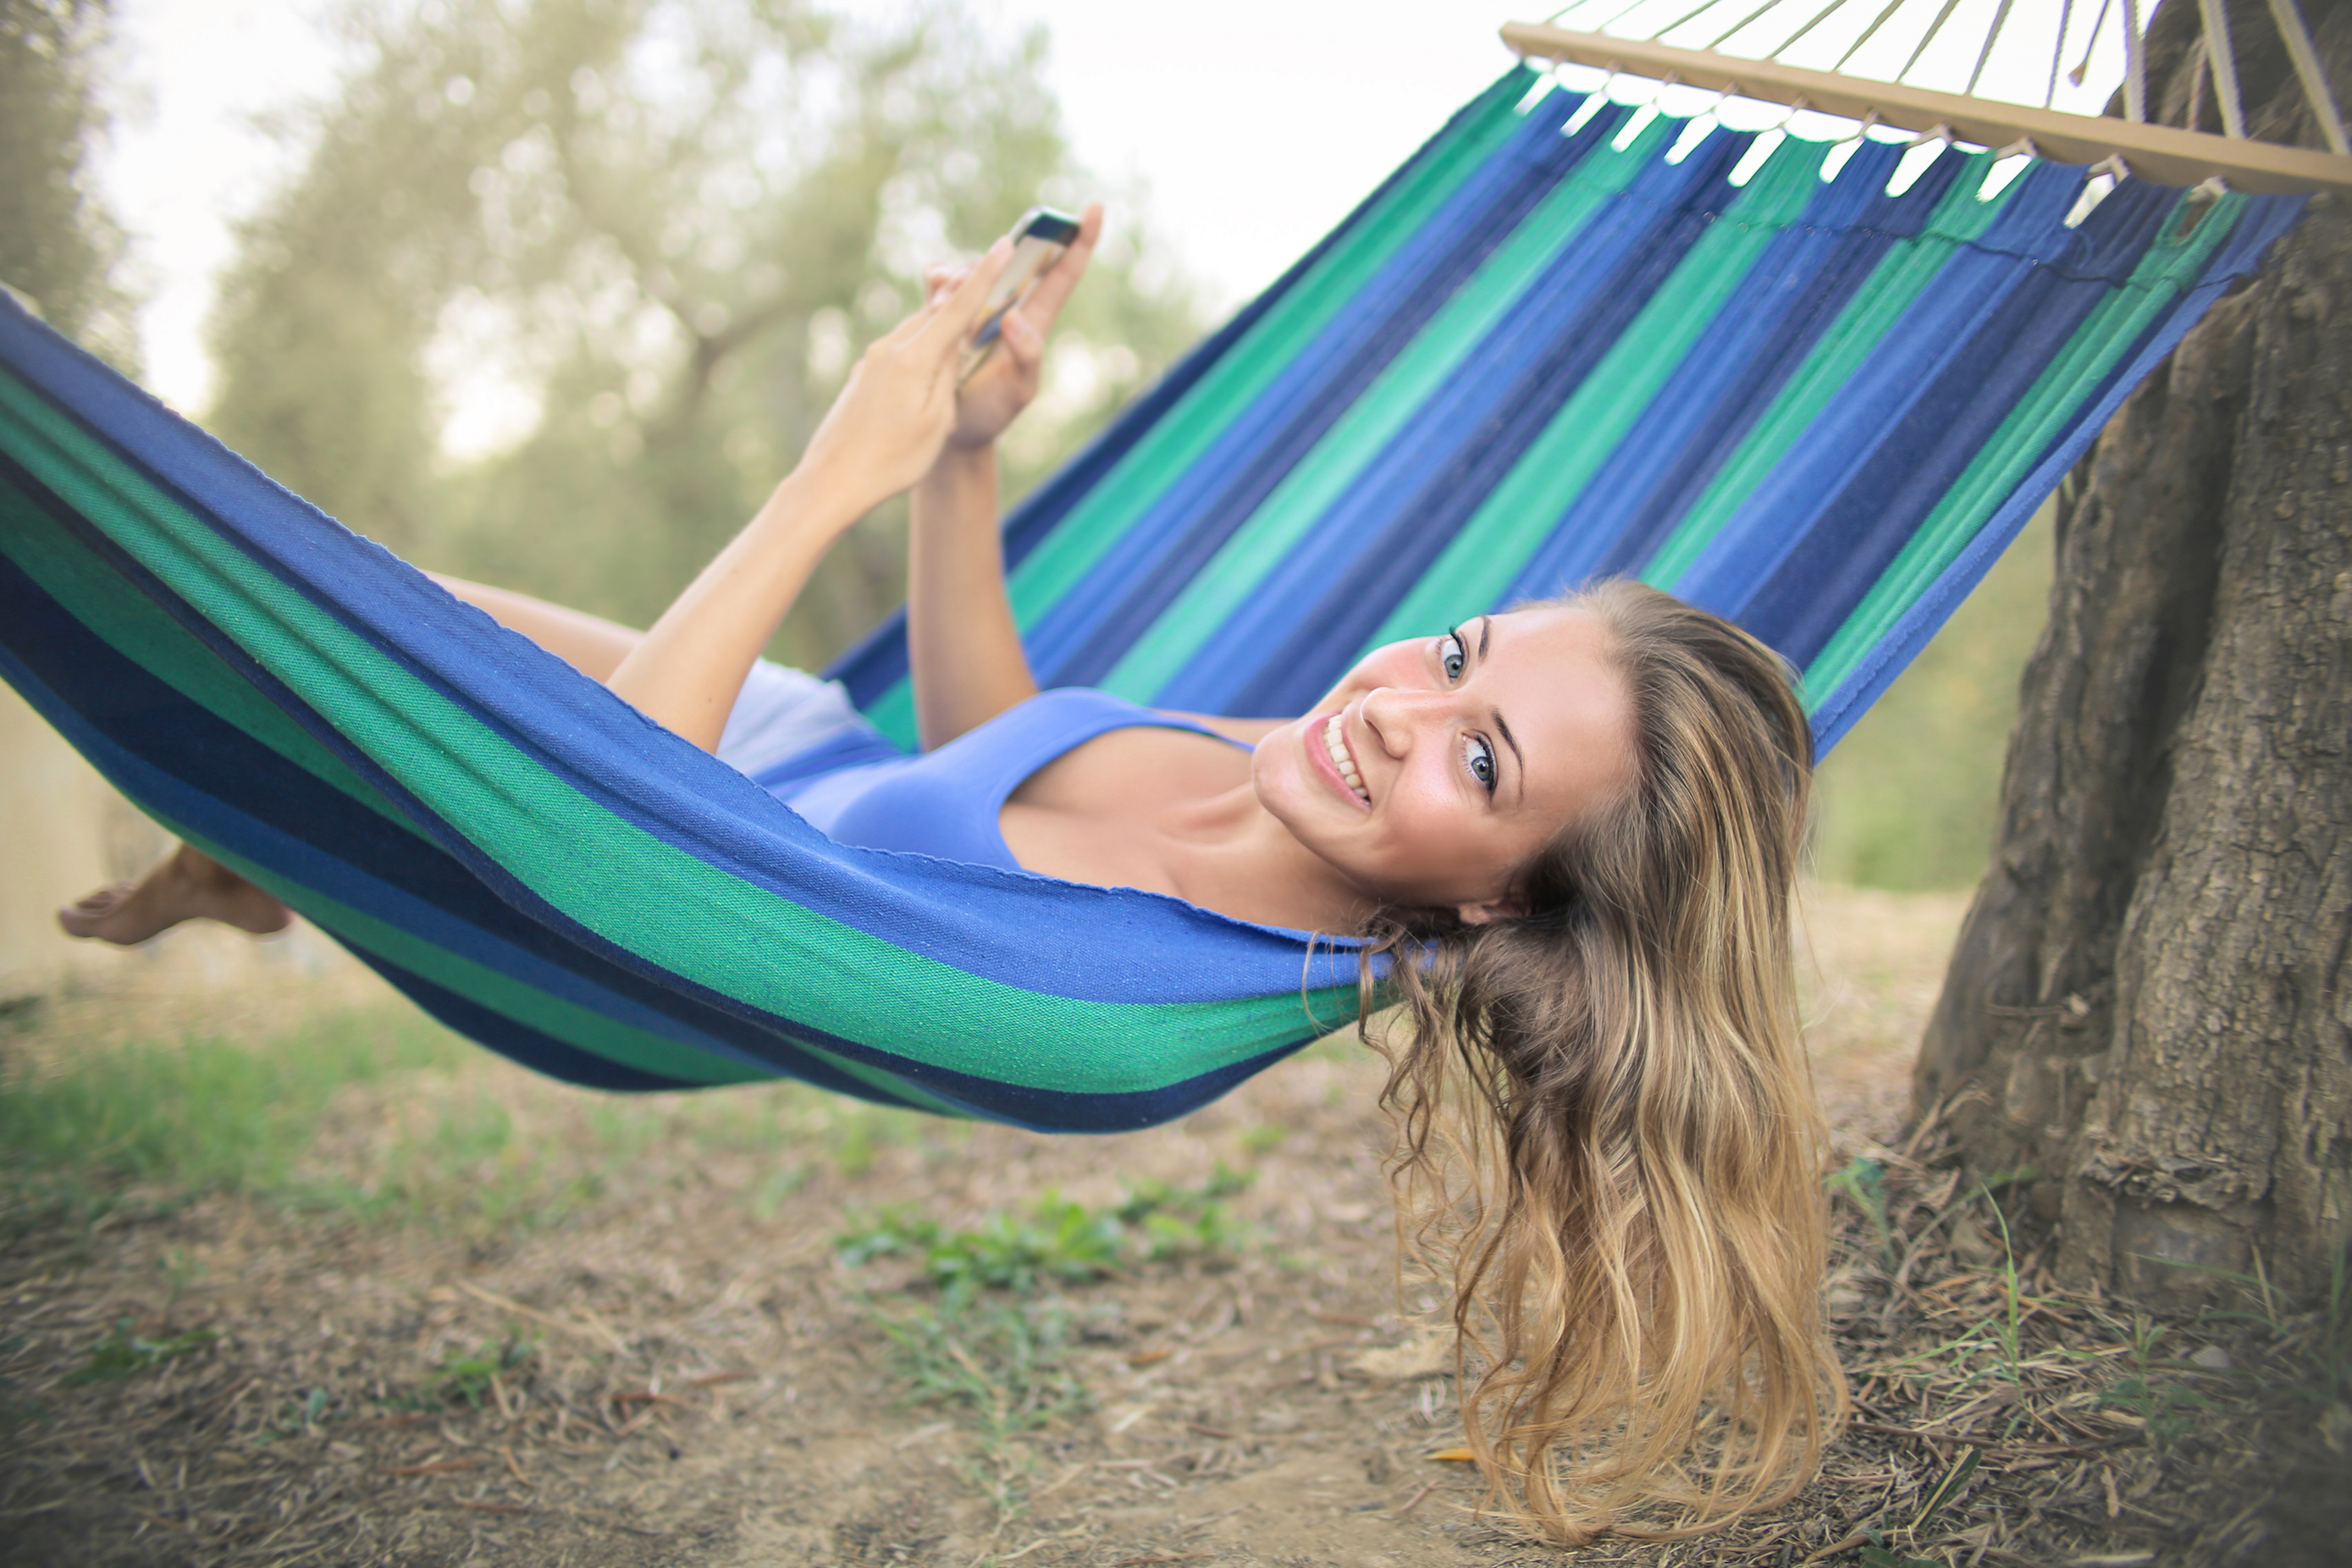 cheerful-young-woman-resting-in-colorful-hammock-3771818.jpg